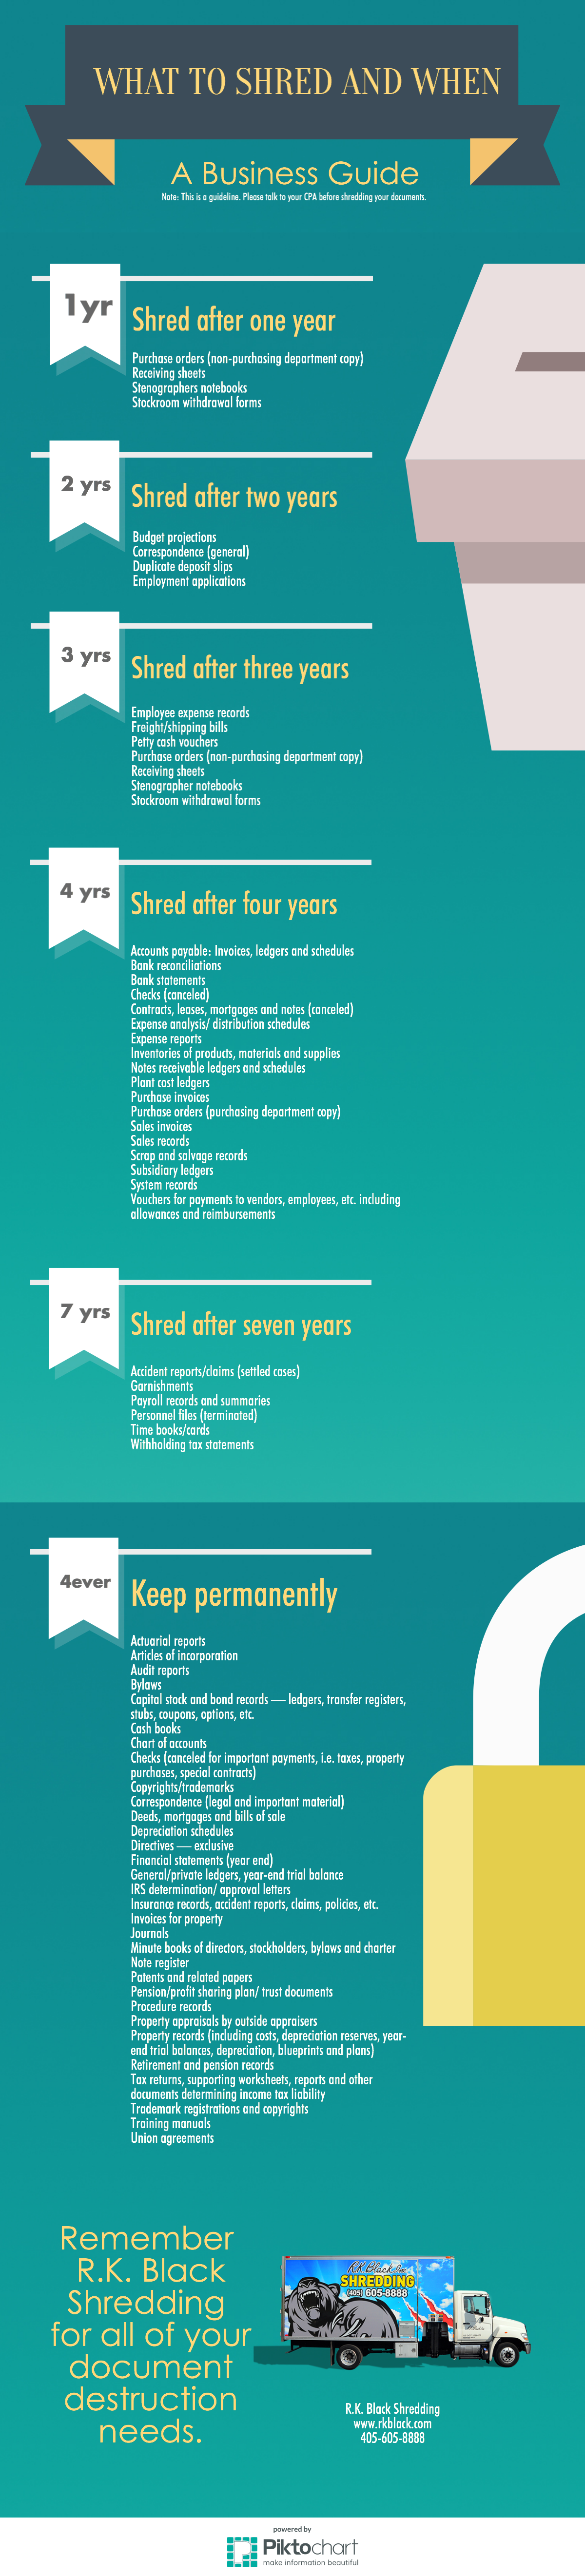 Infographic: Documents to keep, documents to destroy and when. Click to download PDF.